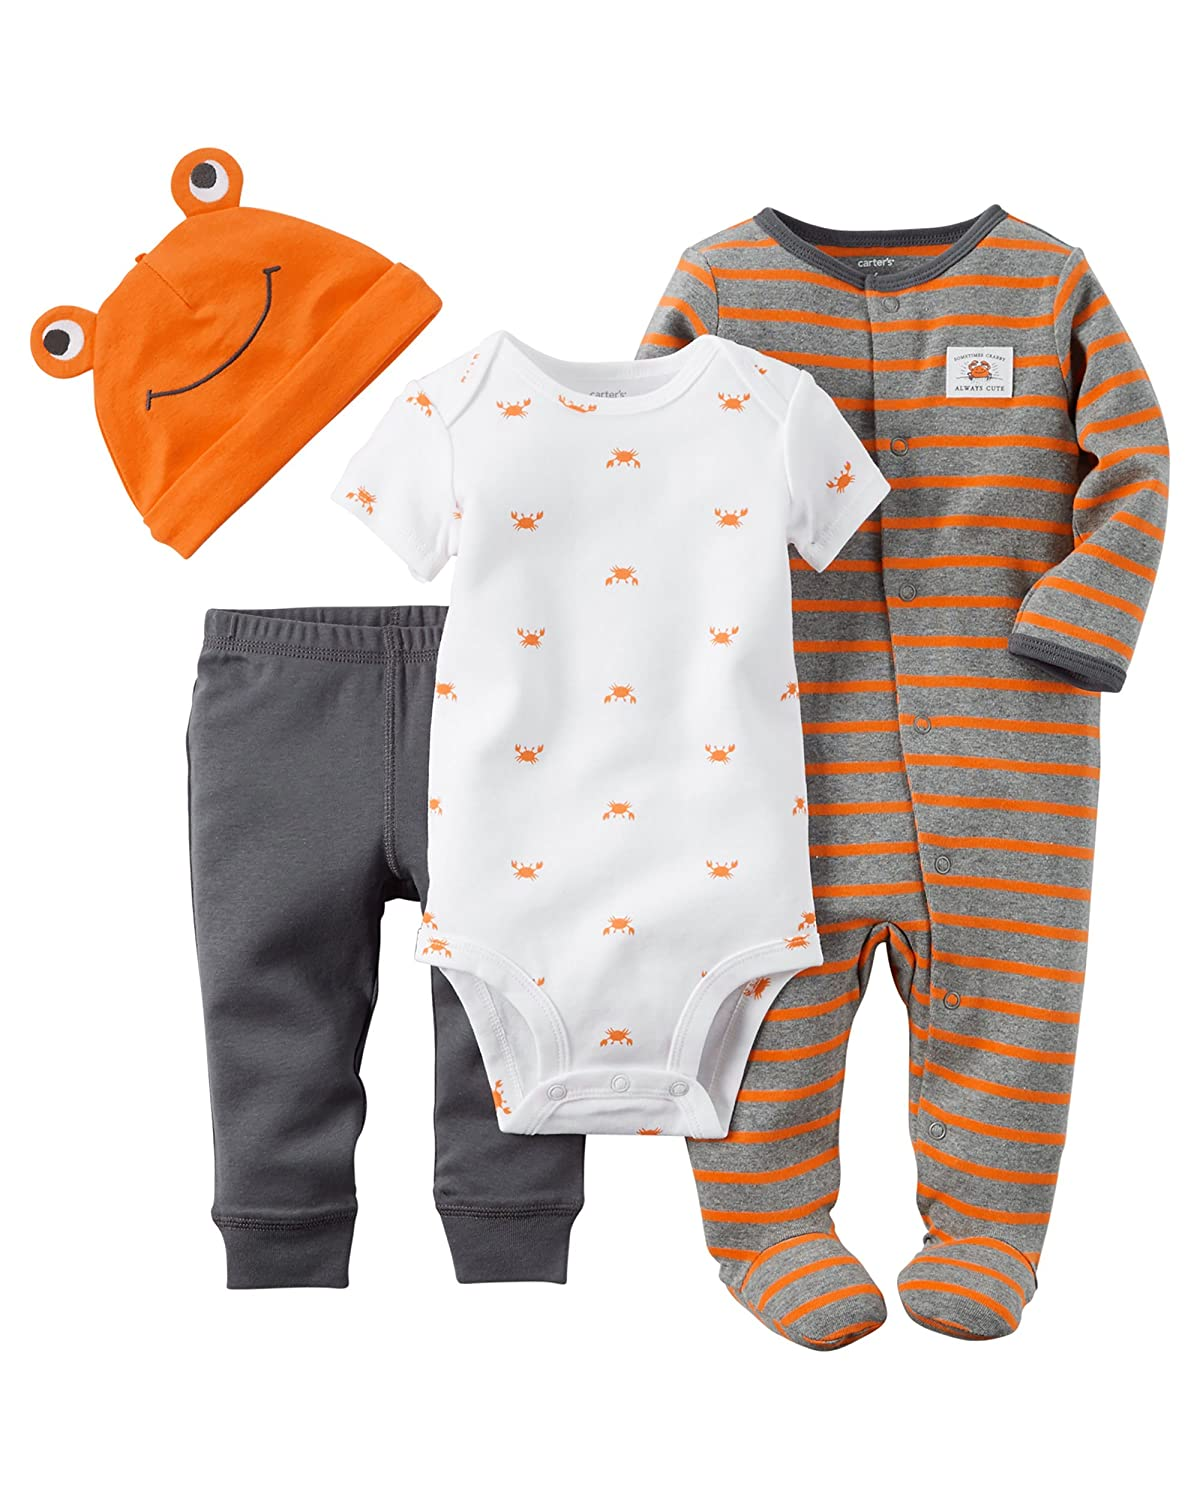 Carters Baby Boys Layette Set (Baby) Orange Crab)